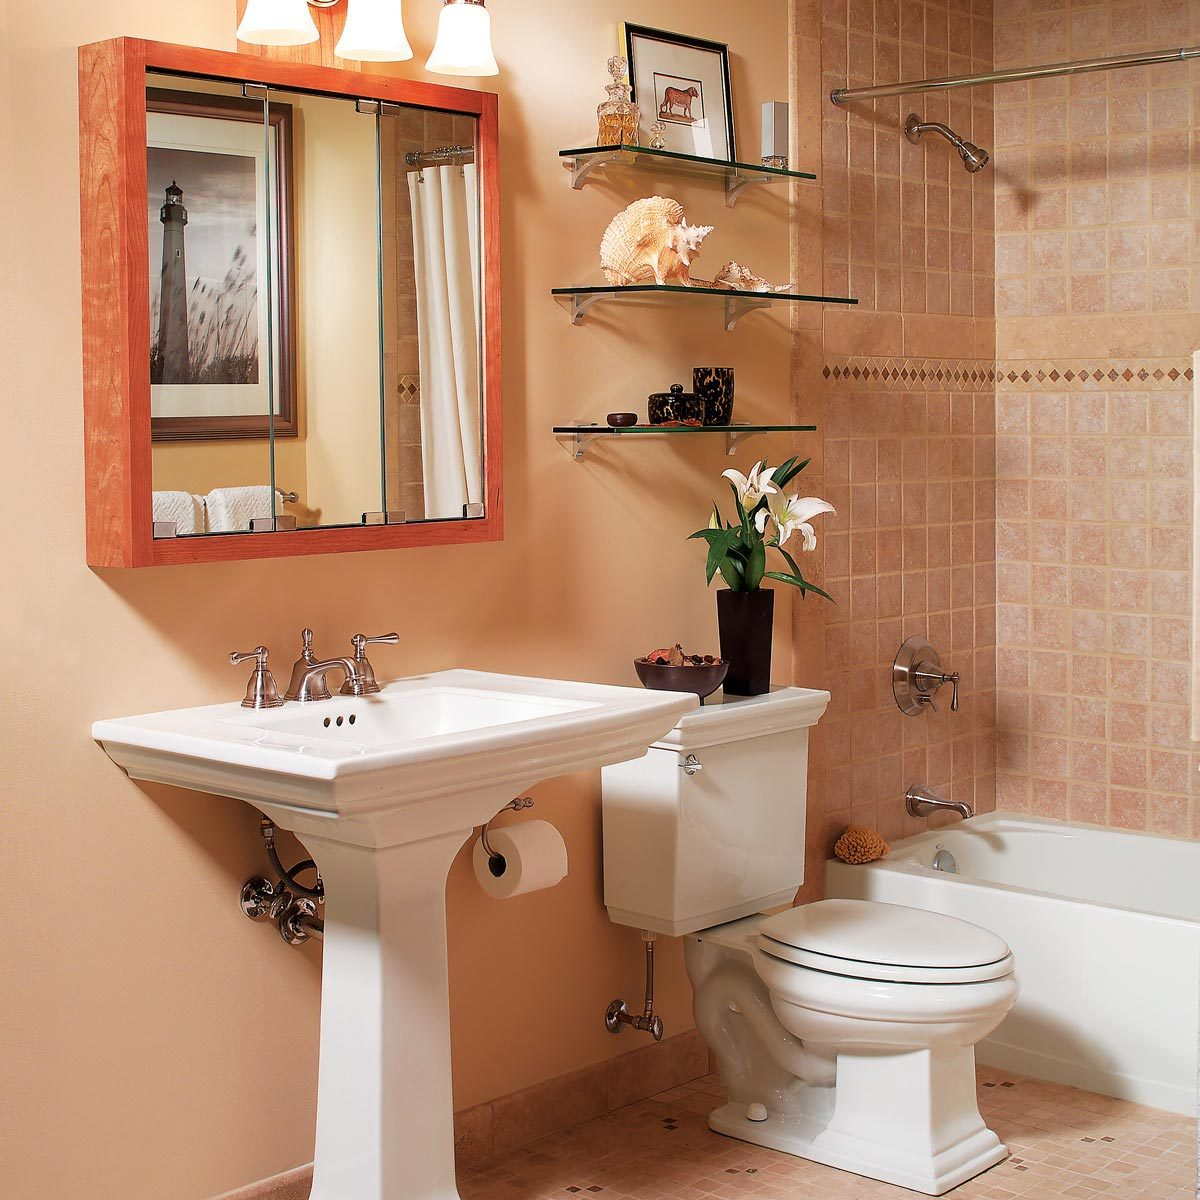 Glass Shelves for Bathroom Storage — The Family Handyman